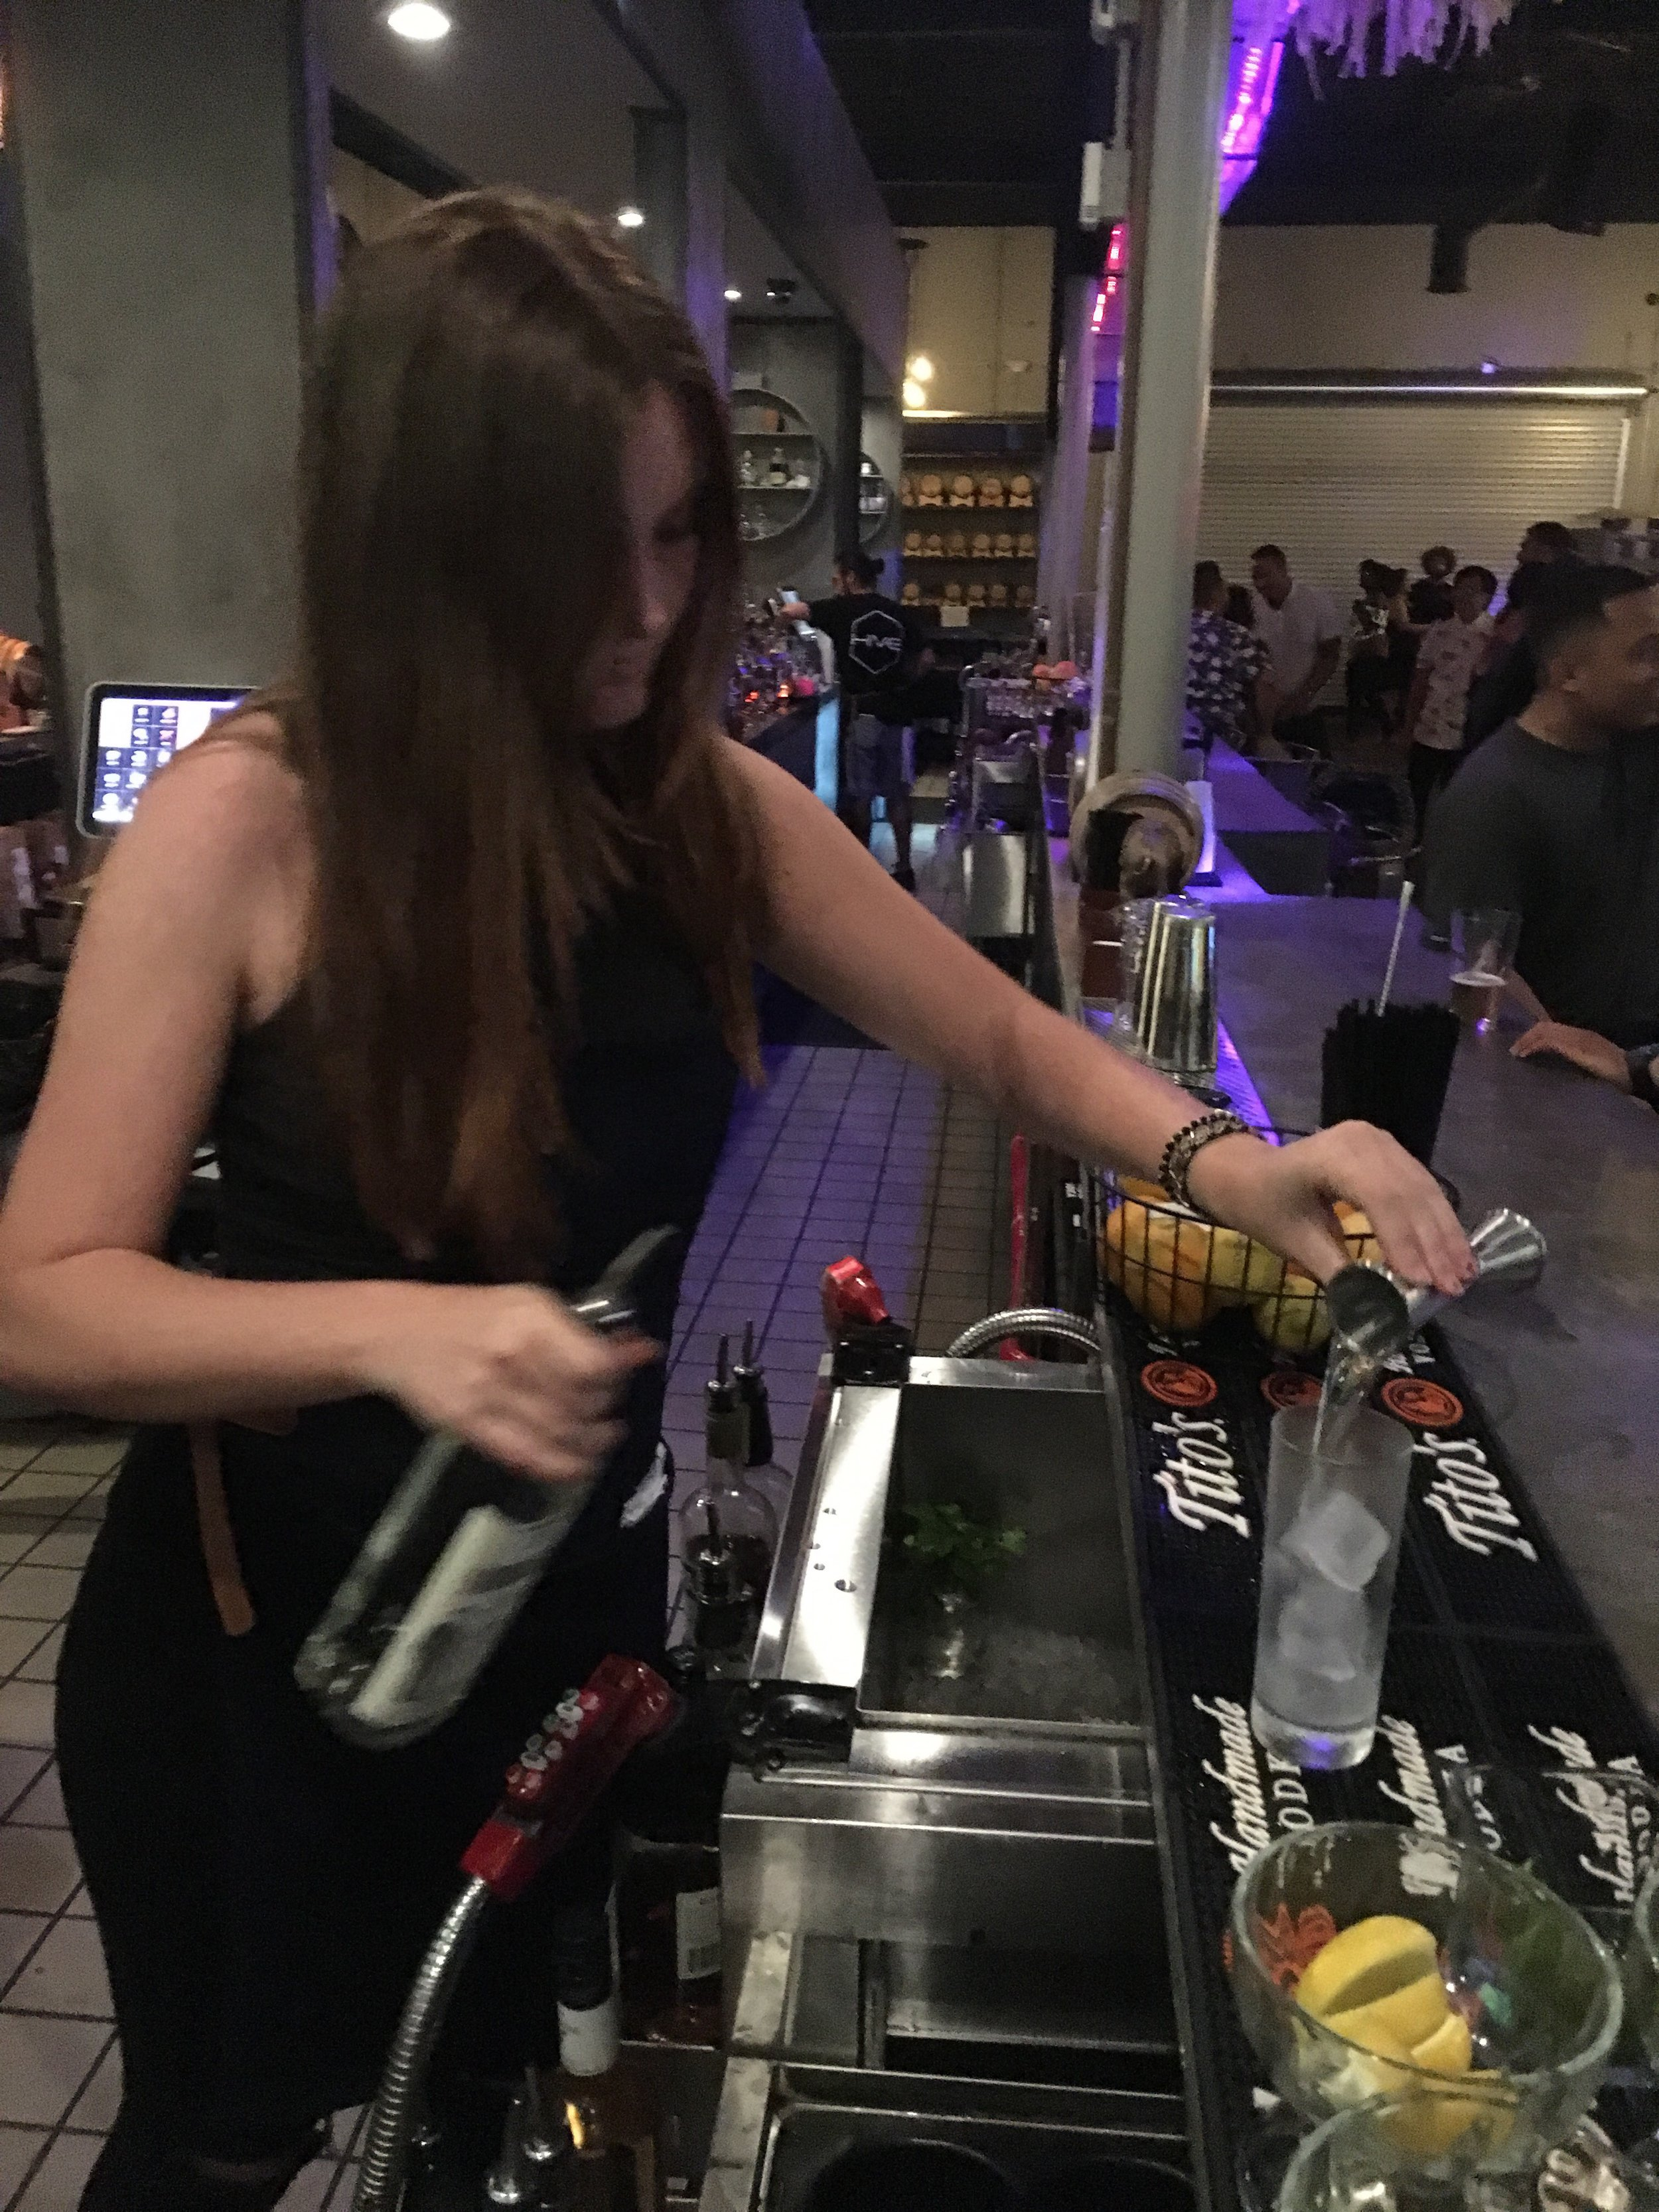 1.Are you currently working as bartender and how long did it take to get your first job?    I am currently working as a bartender at a Restaurant/ Nightclub thanks to GBS. After completing GBS it took less than 1 weeks to get hired at my first job.     2. How did GBS help you land your first Job?    GBS helped me landing my first job by providing me with job interviews and a great resume & job hunting workshop. I learned how to write a bartending resume, interview tips, and job searching tips. GBS gave me all the resources I needed to go out and find a bartending job that was perfect for me.    3. Did the skills you learn at GBS help you be successful bartender?    Yes. all of the skills and tips that I learned at GBS made me feel extremely prepared at my job. I learned customer service points, up selling, how to properly use bar equipment, and how to use a POS system. It was very helpful to have the opportunity to practice all the techniques beforehand.    4. Why did you choose GBS and how would you grade your overall experience?    I chose GBS because it was a high rated bartending school on yelp. The website was very clear on days, times, and had many great testimonials from other students. I am more than happy with my overall experience and would recommend this class to anyone wanting to become a bartender.  -Recent Graduate Elizabeth